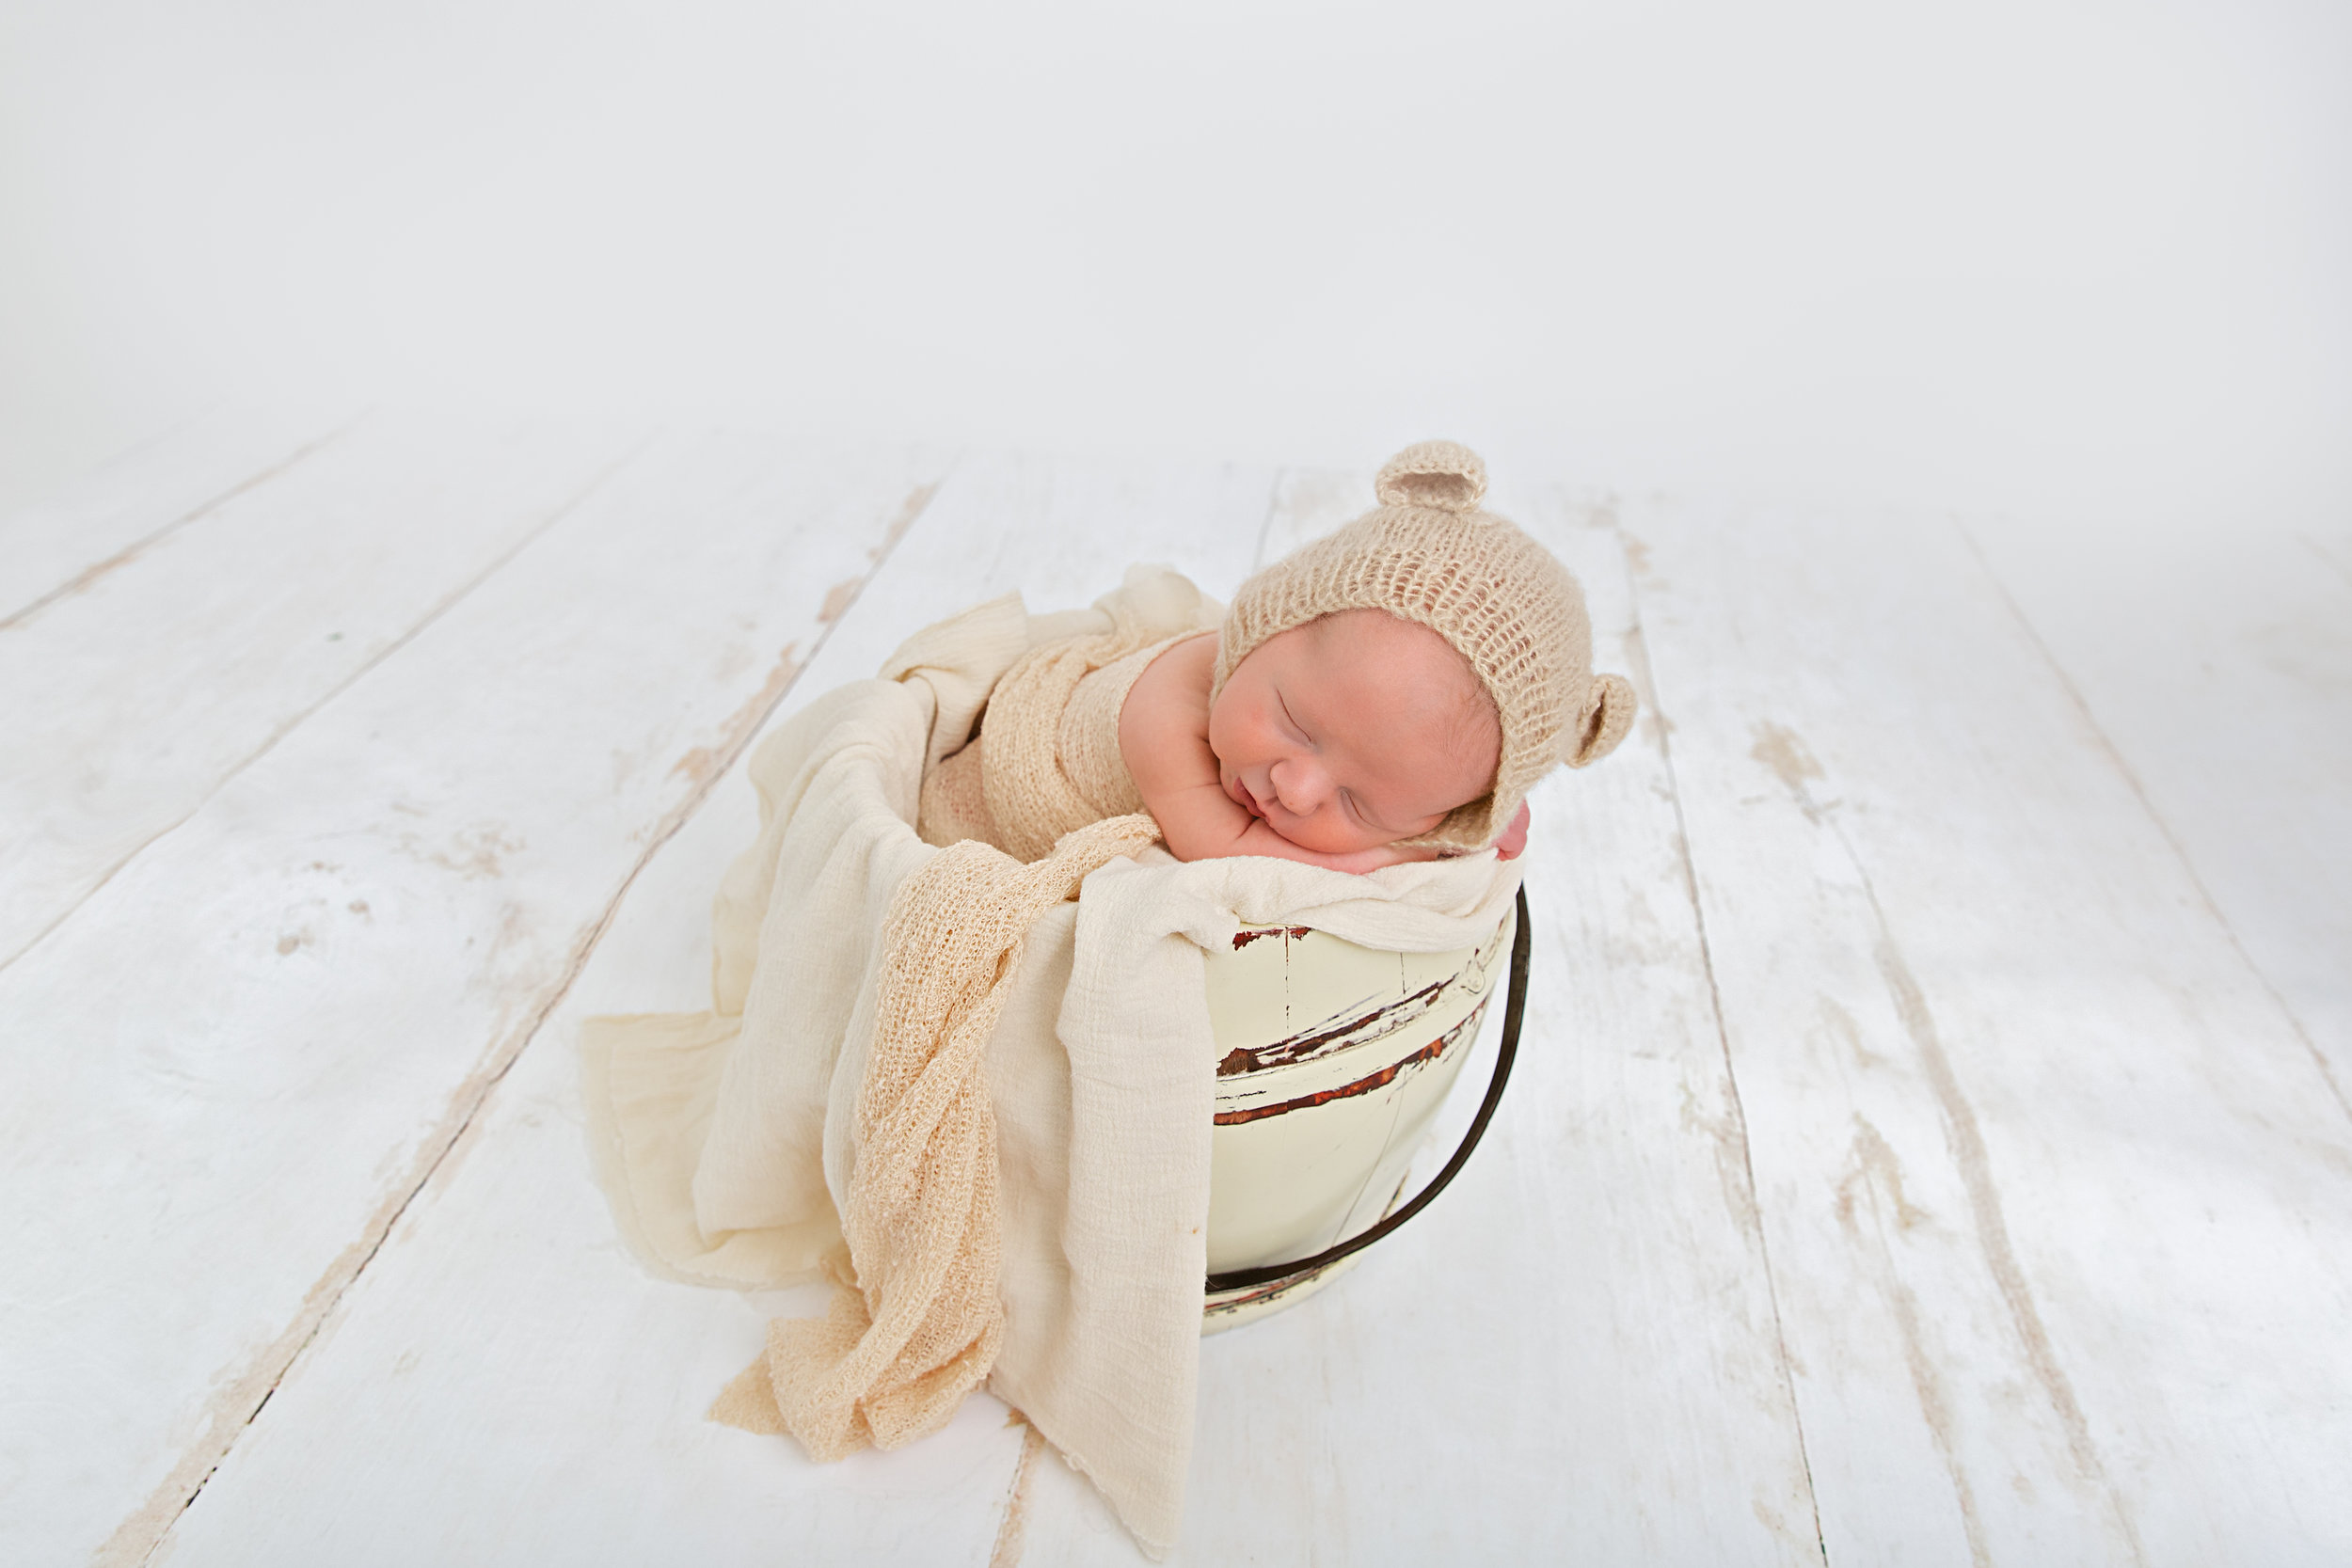 newborn baby in prop pose